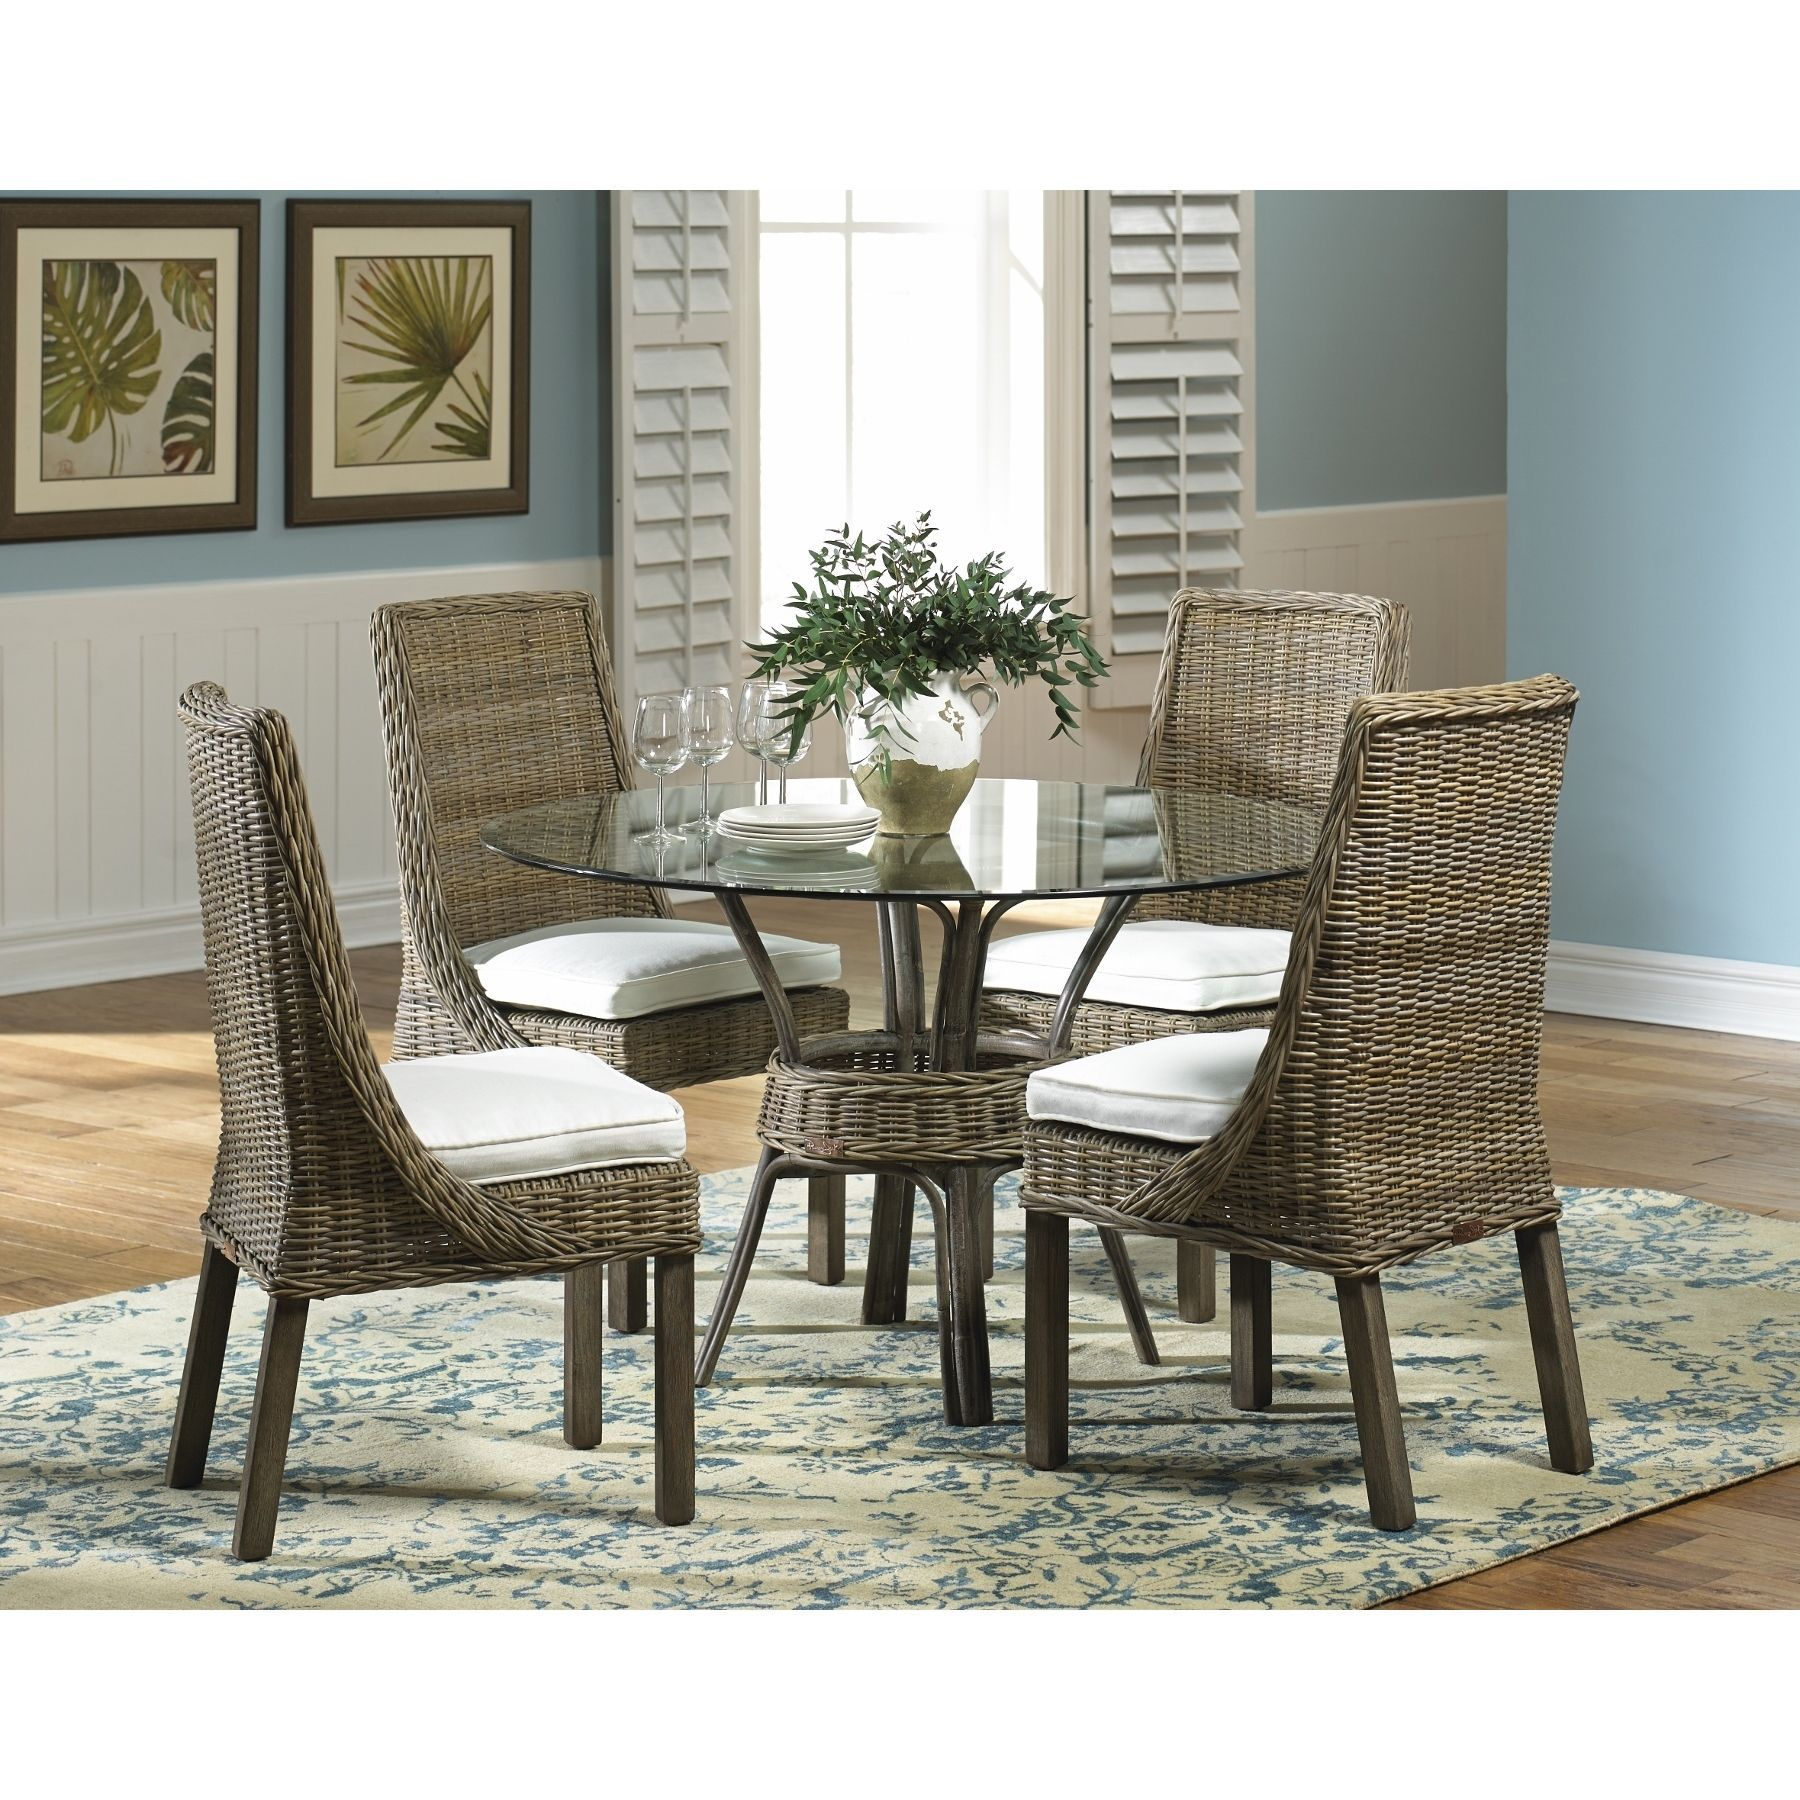 Online Shopping Bedding Furniture Electronics Jewelry Clothing More Wicker Dining Set Dining Set 48 Round Dining Table